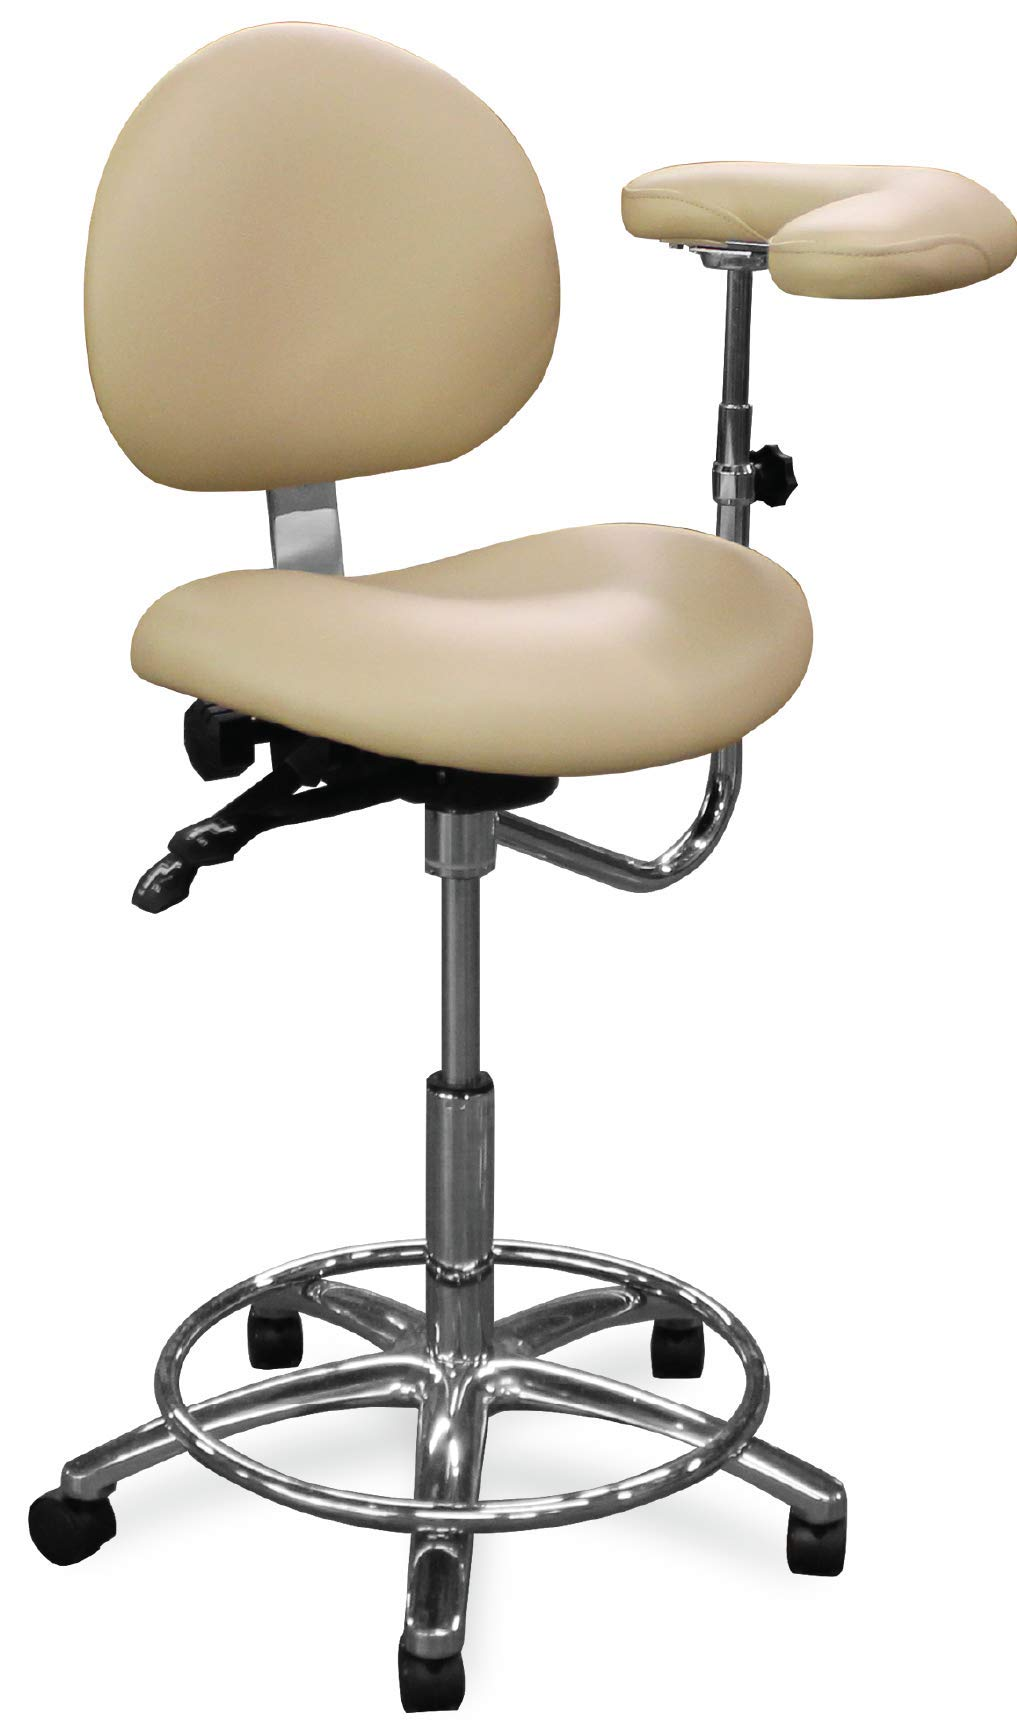 Dentists Unite 311-00 Ergonomic Dental Assistant Stool with Body Arm